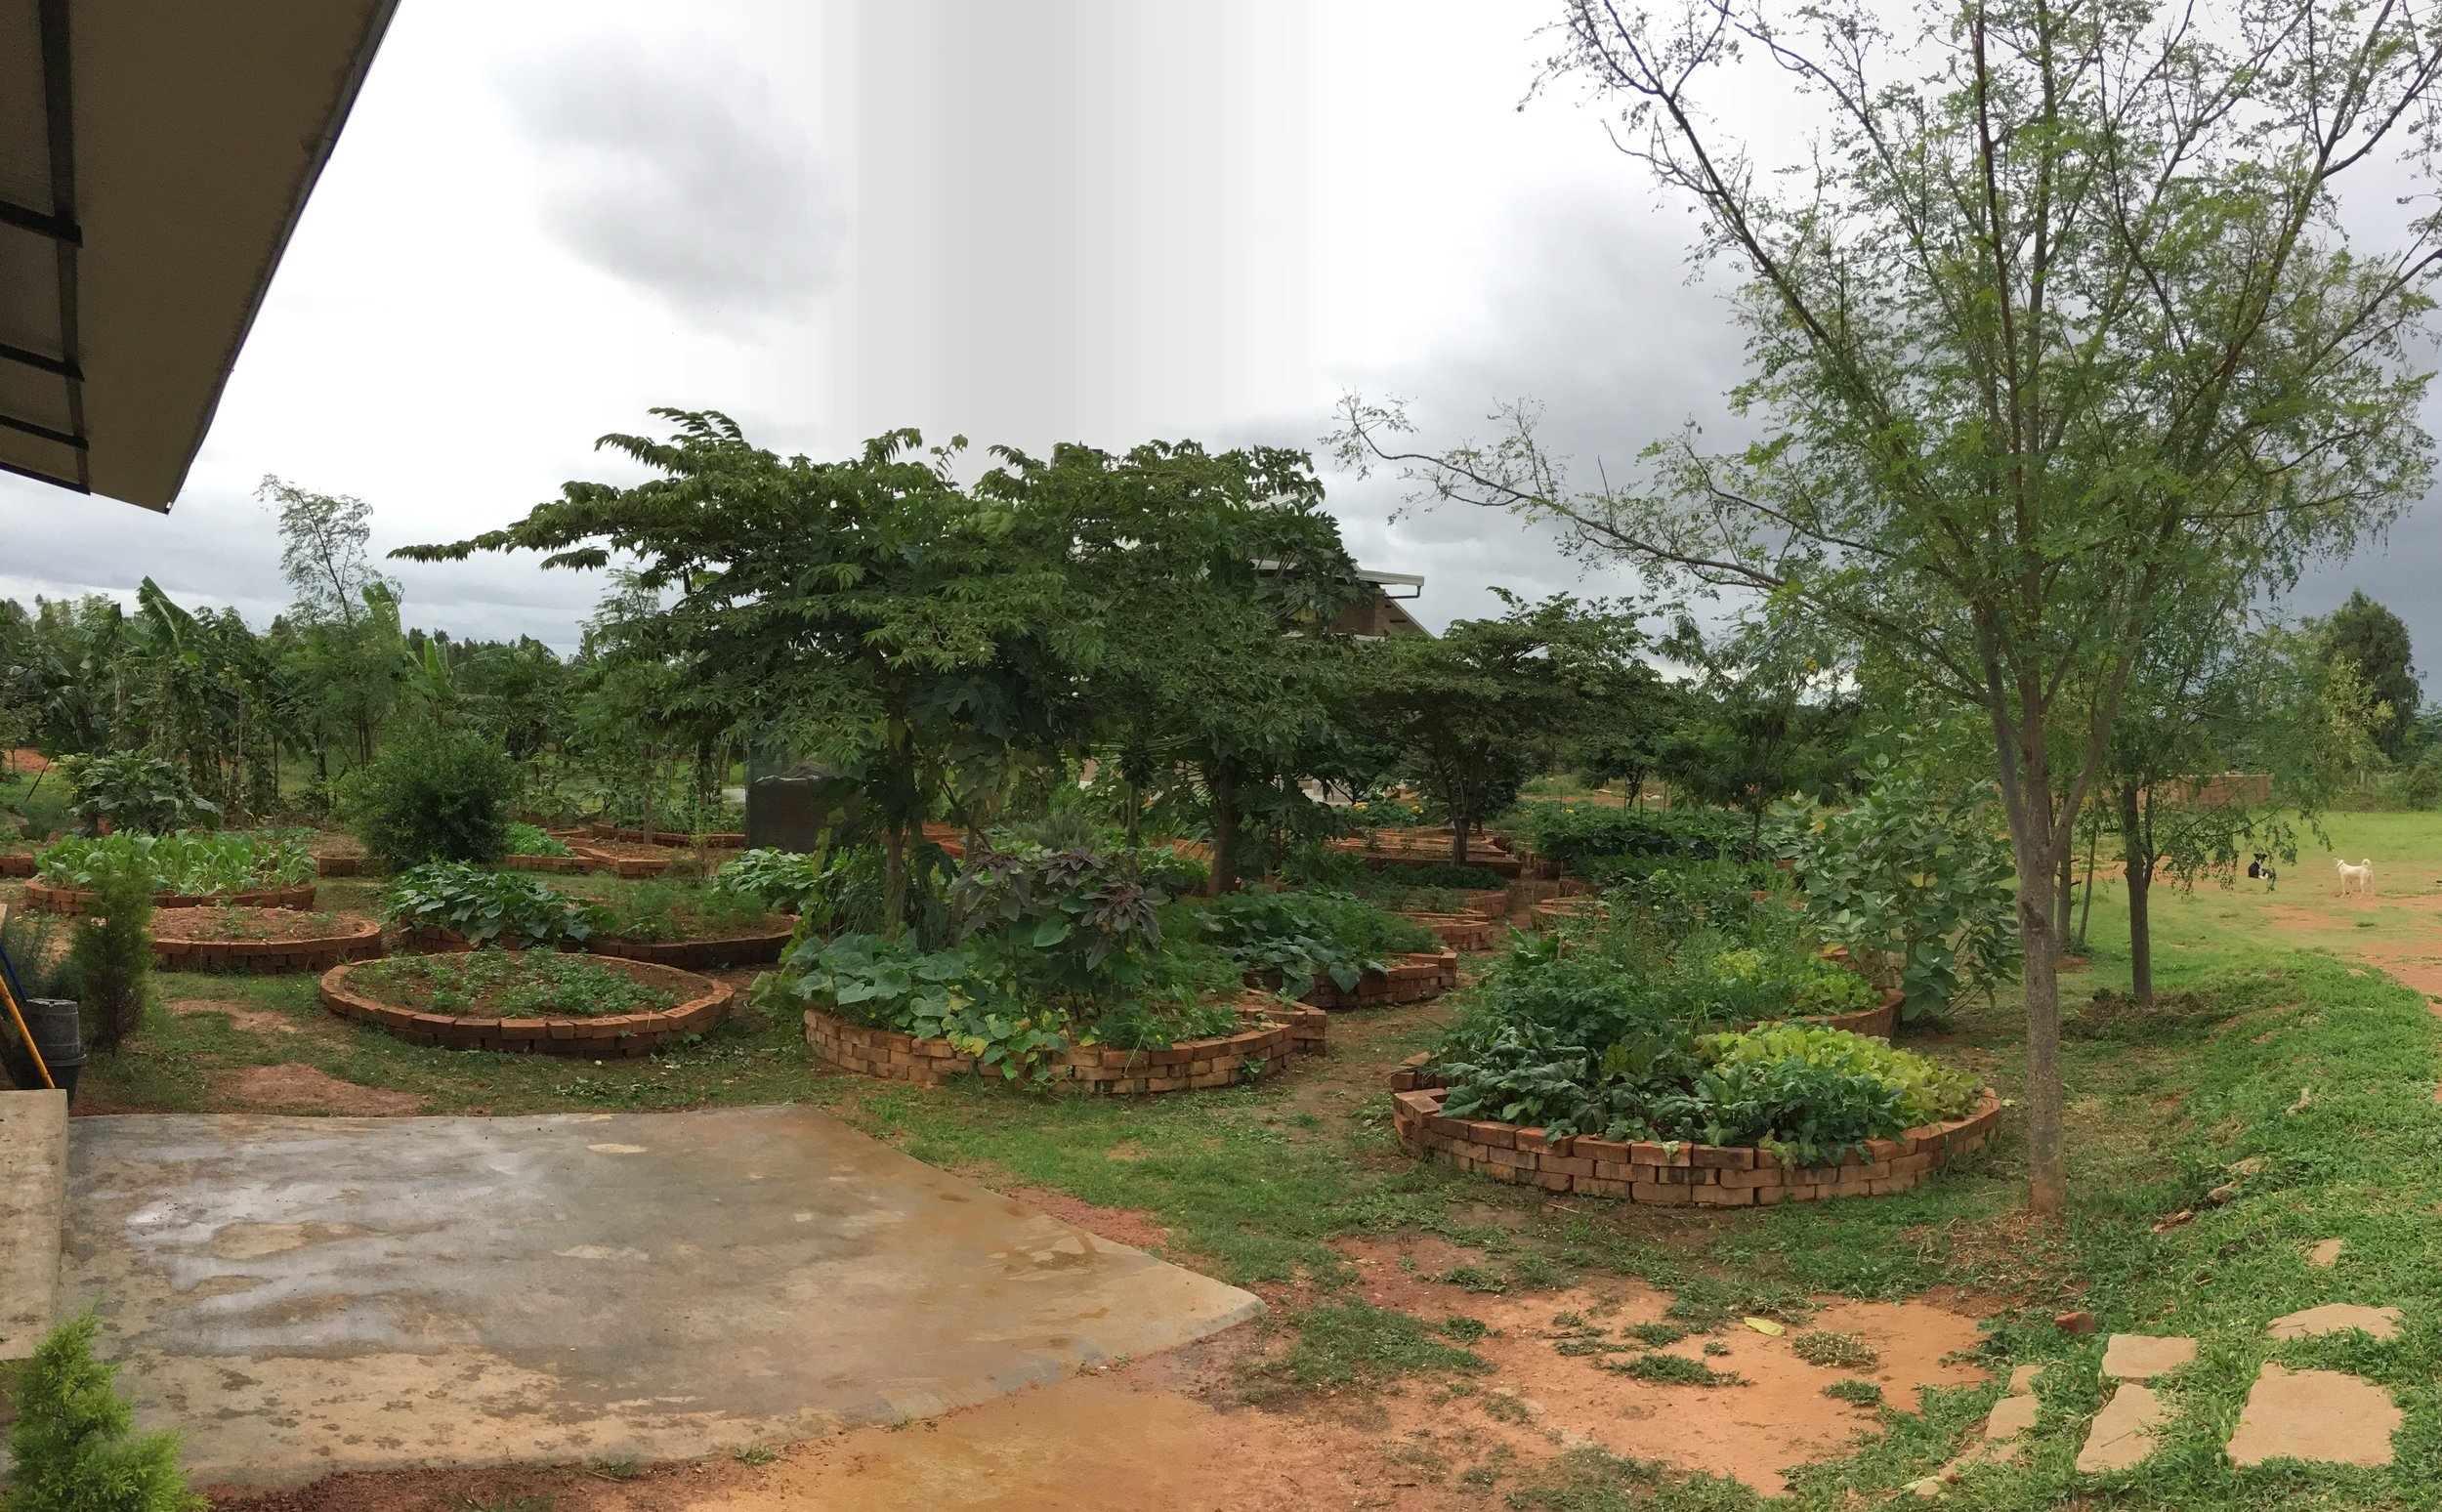 The vegetable garden at Perma Farm with interior trees (in this case Singapore Cherry) shading and protecting the raised beds, and windbreaks on three sides with Drumstick, Gliricidia, Pigeon Pea and Bananas.